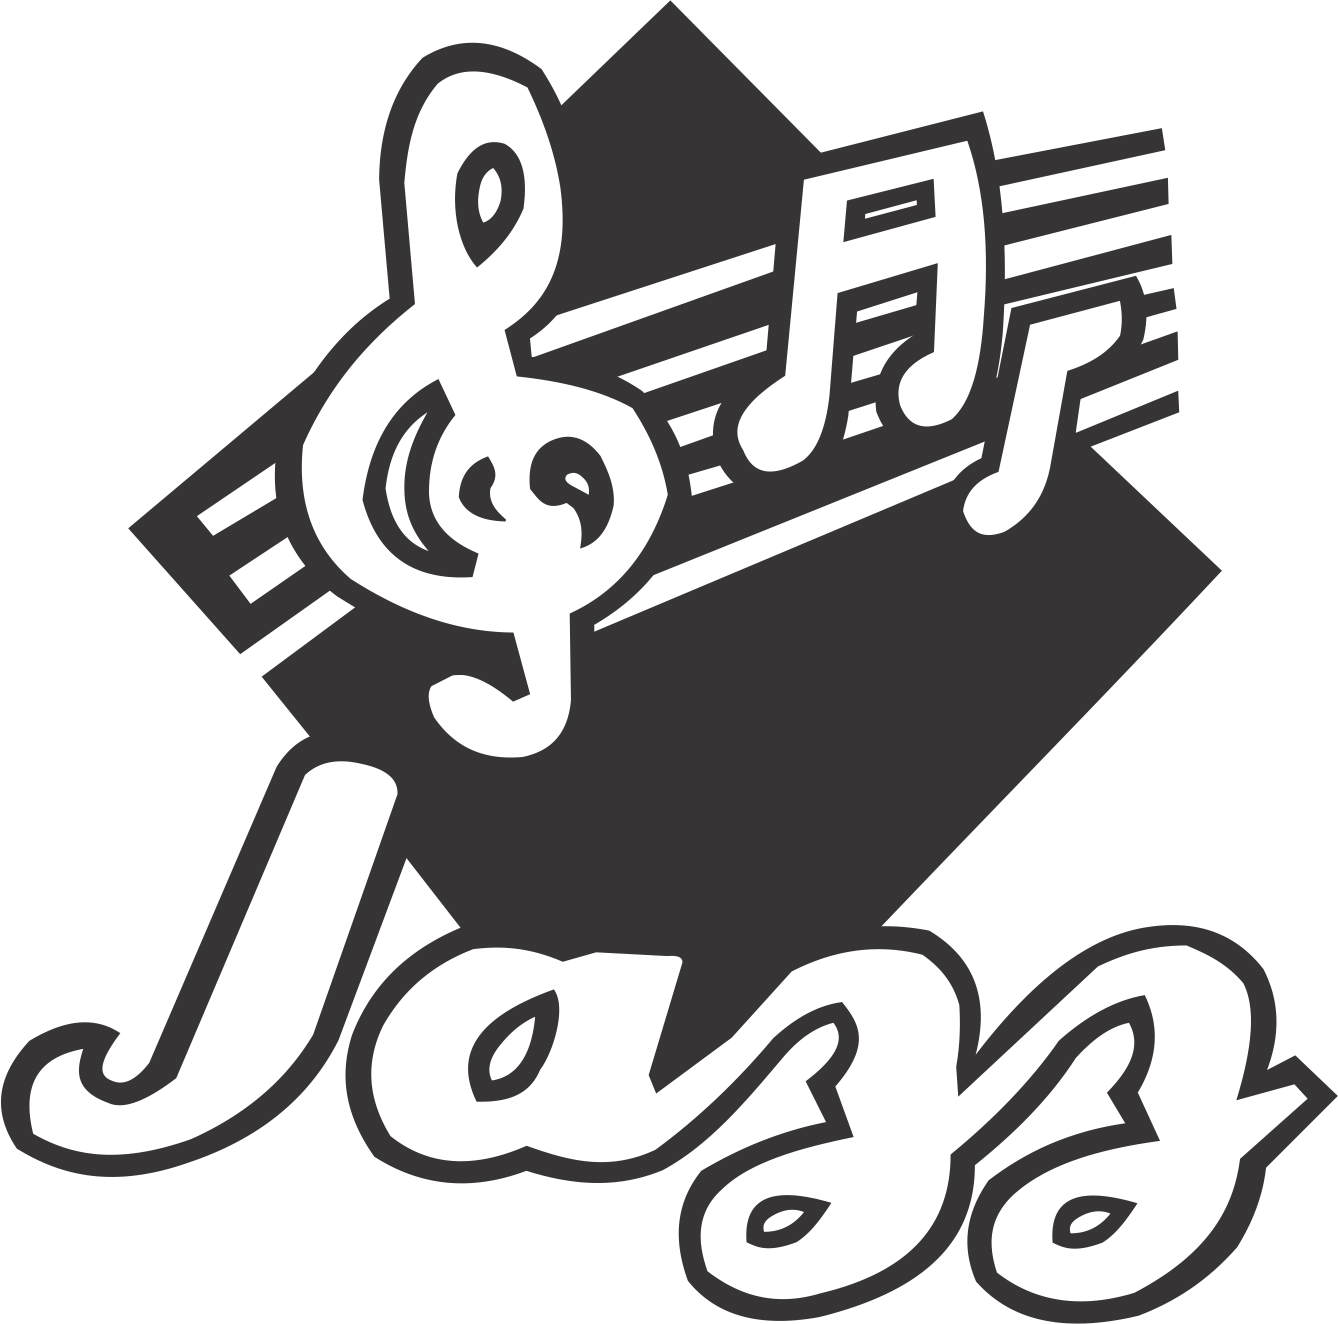 the jazz patch